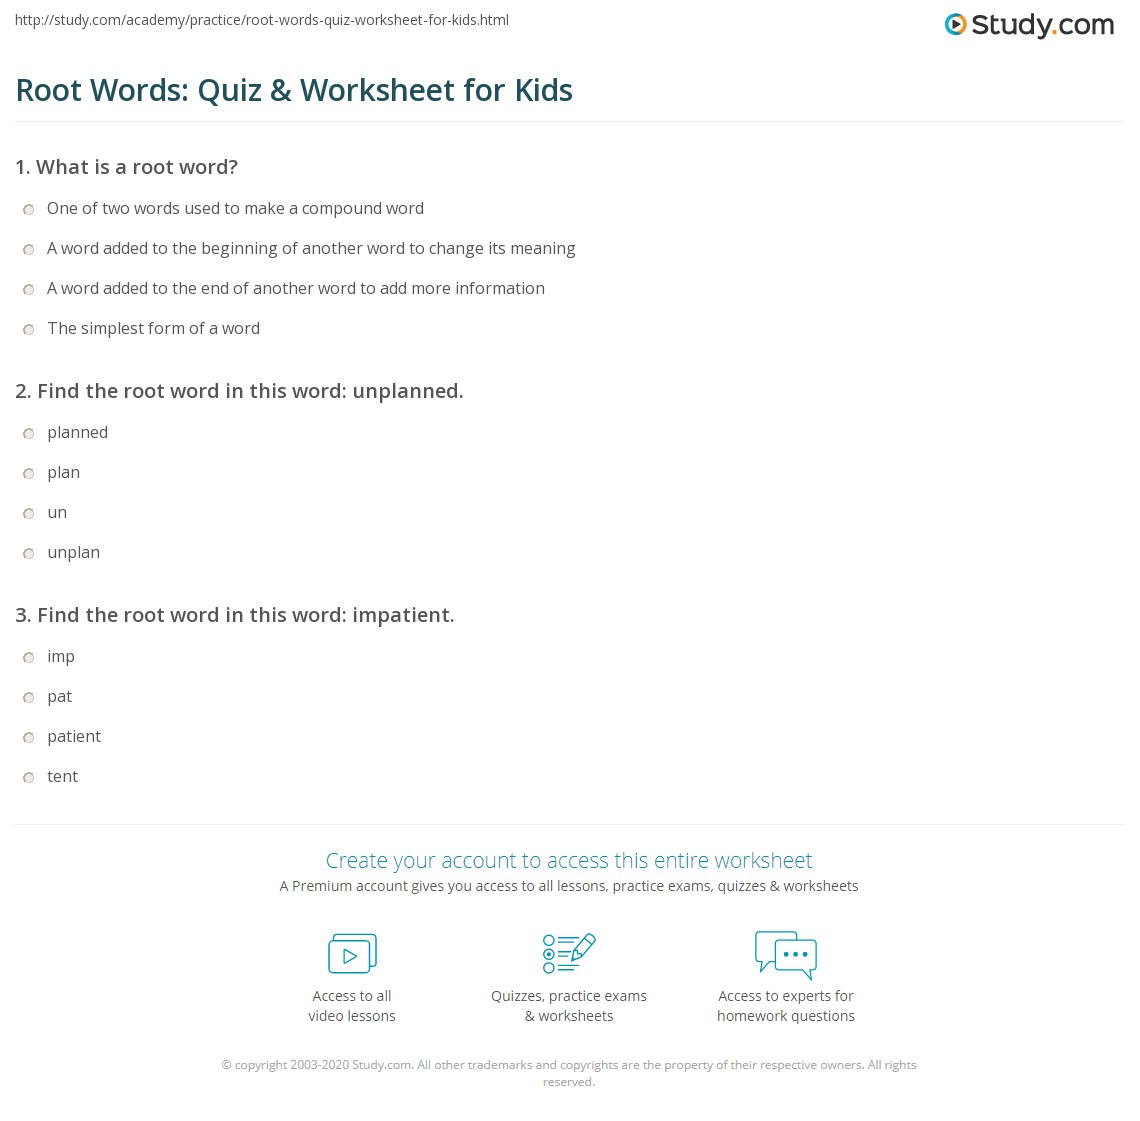 Root Words: Quiz & Worksheet for Kids | Study com